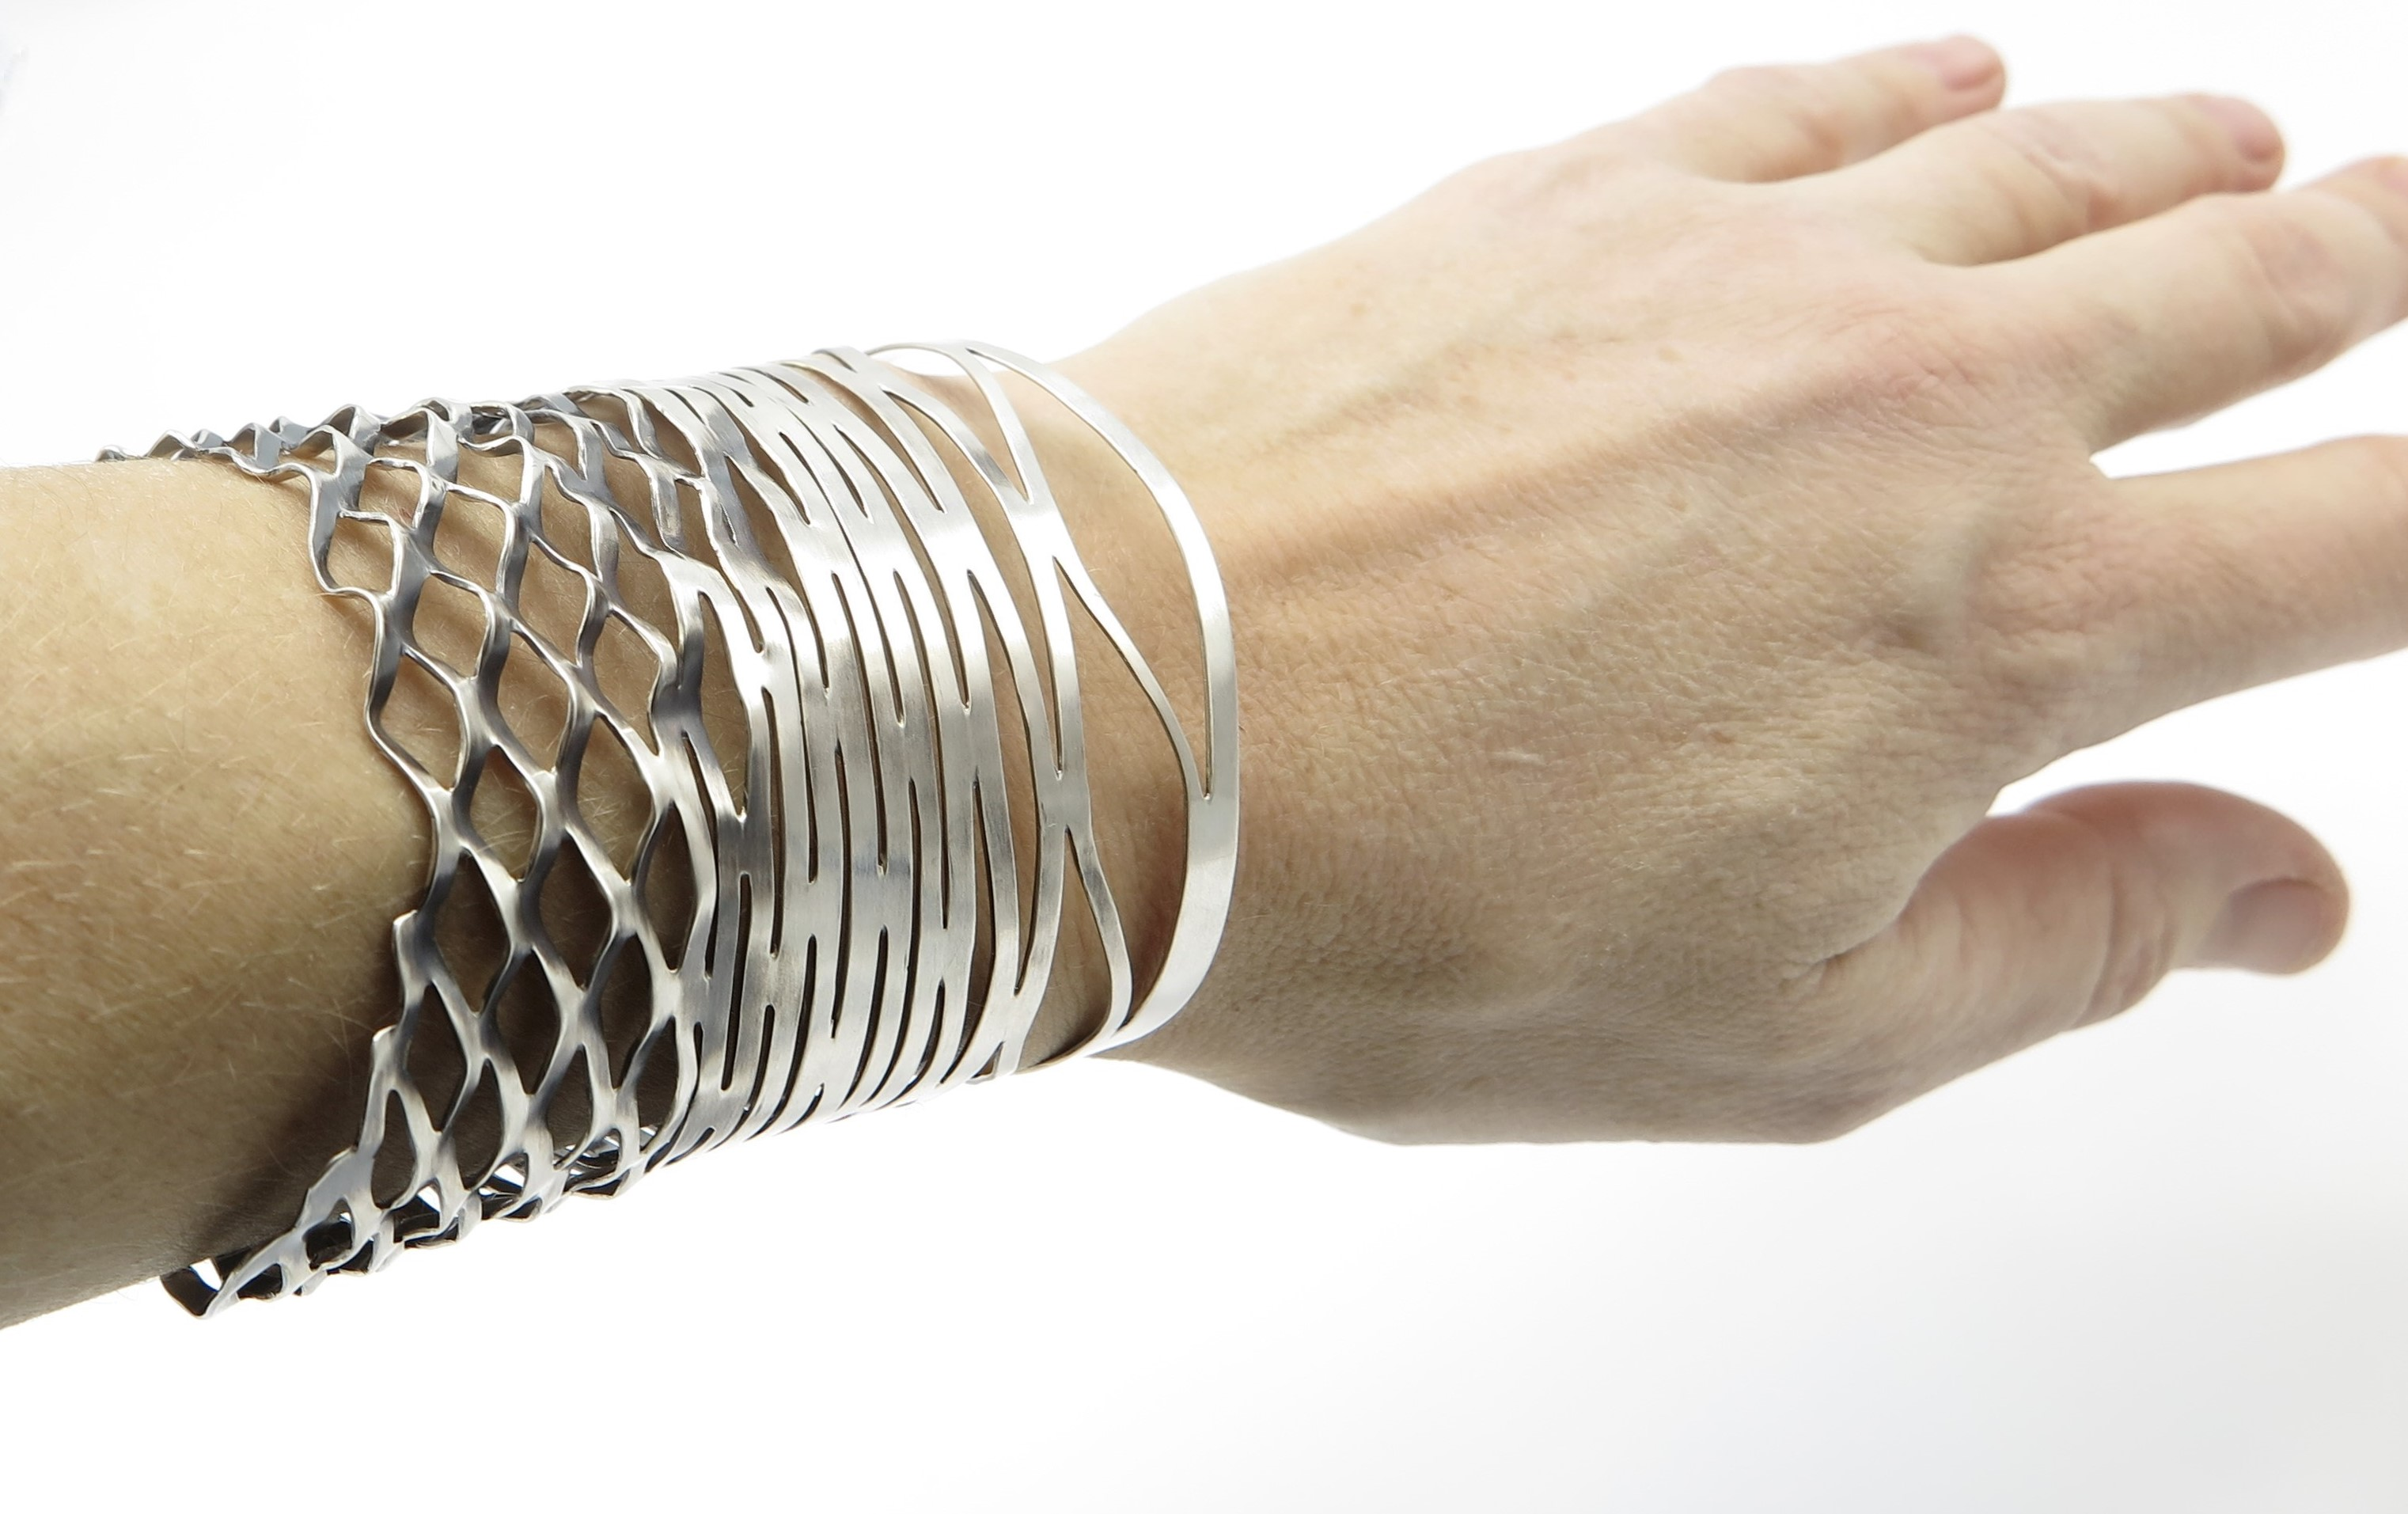 Expanding Mesh Cuff on Hand